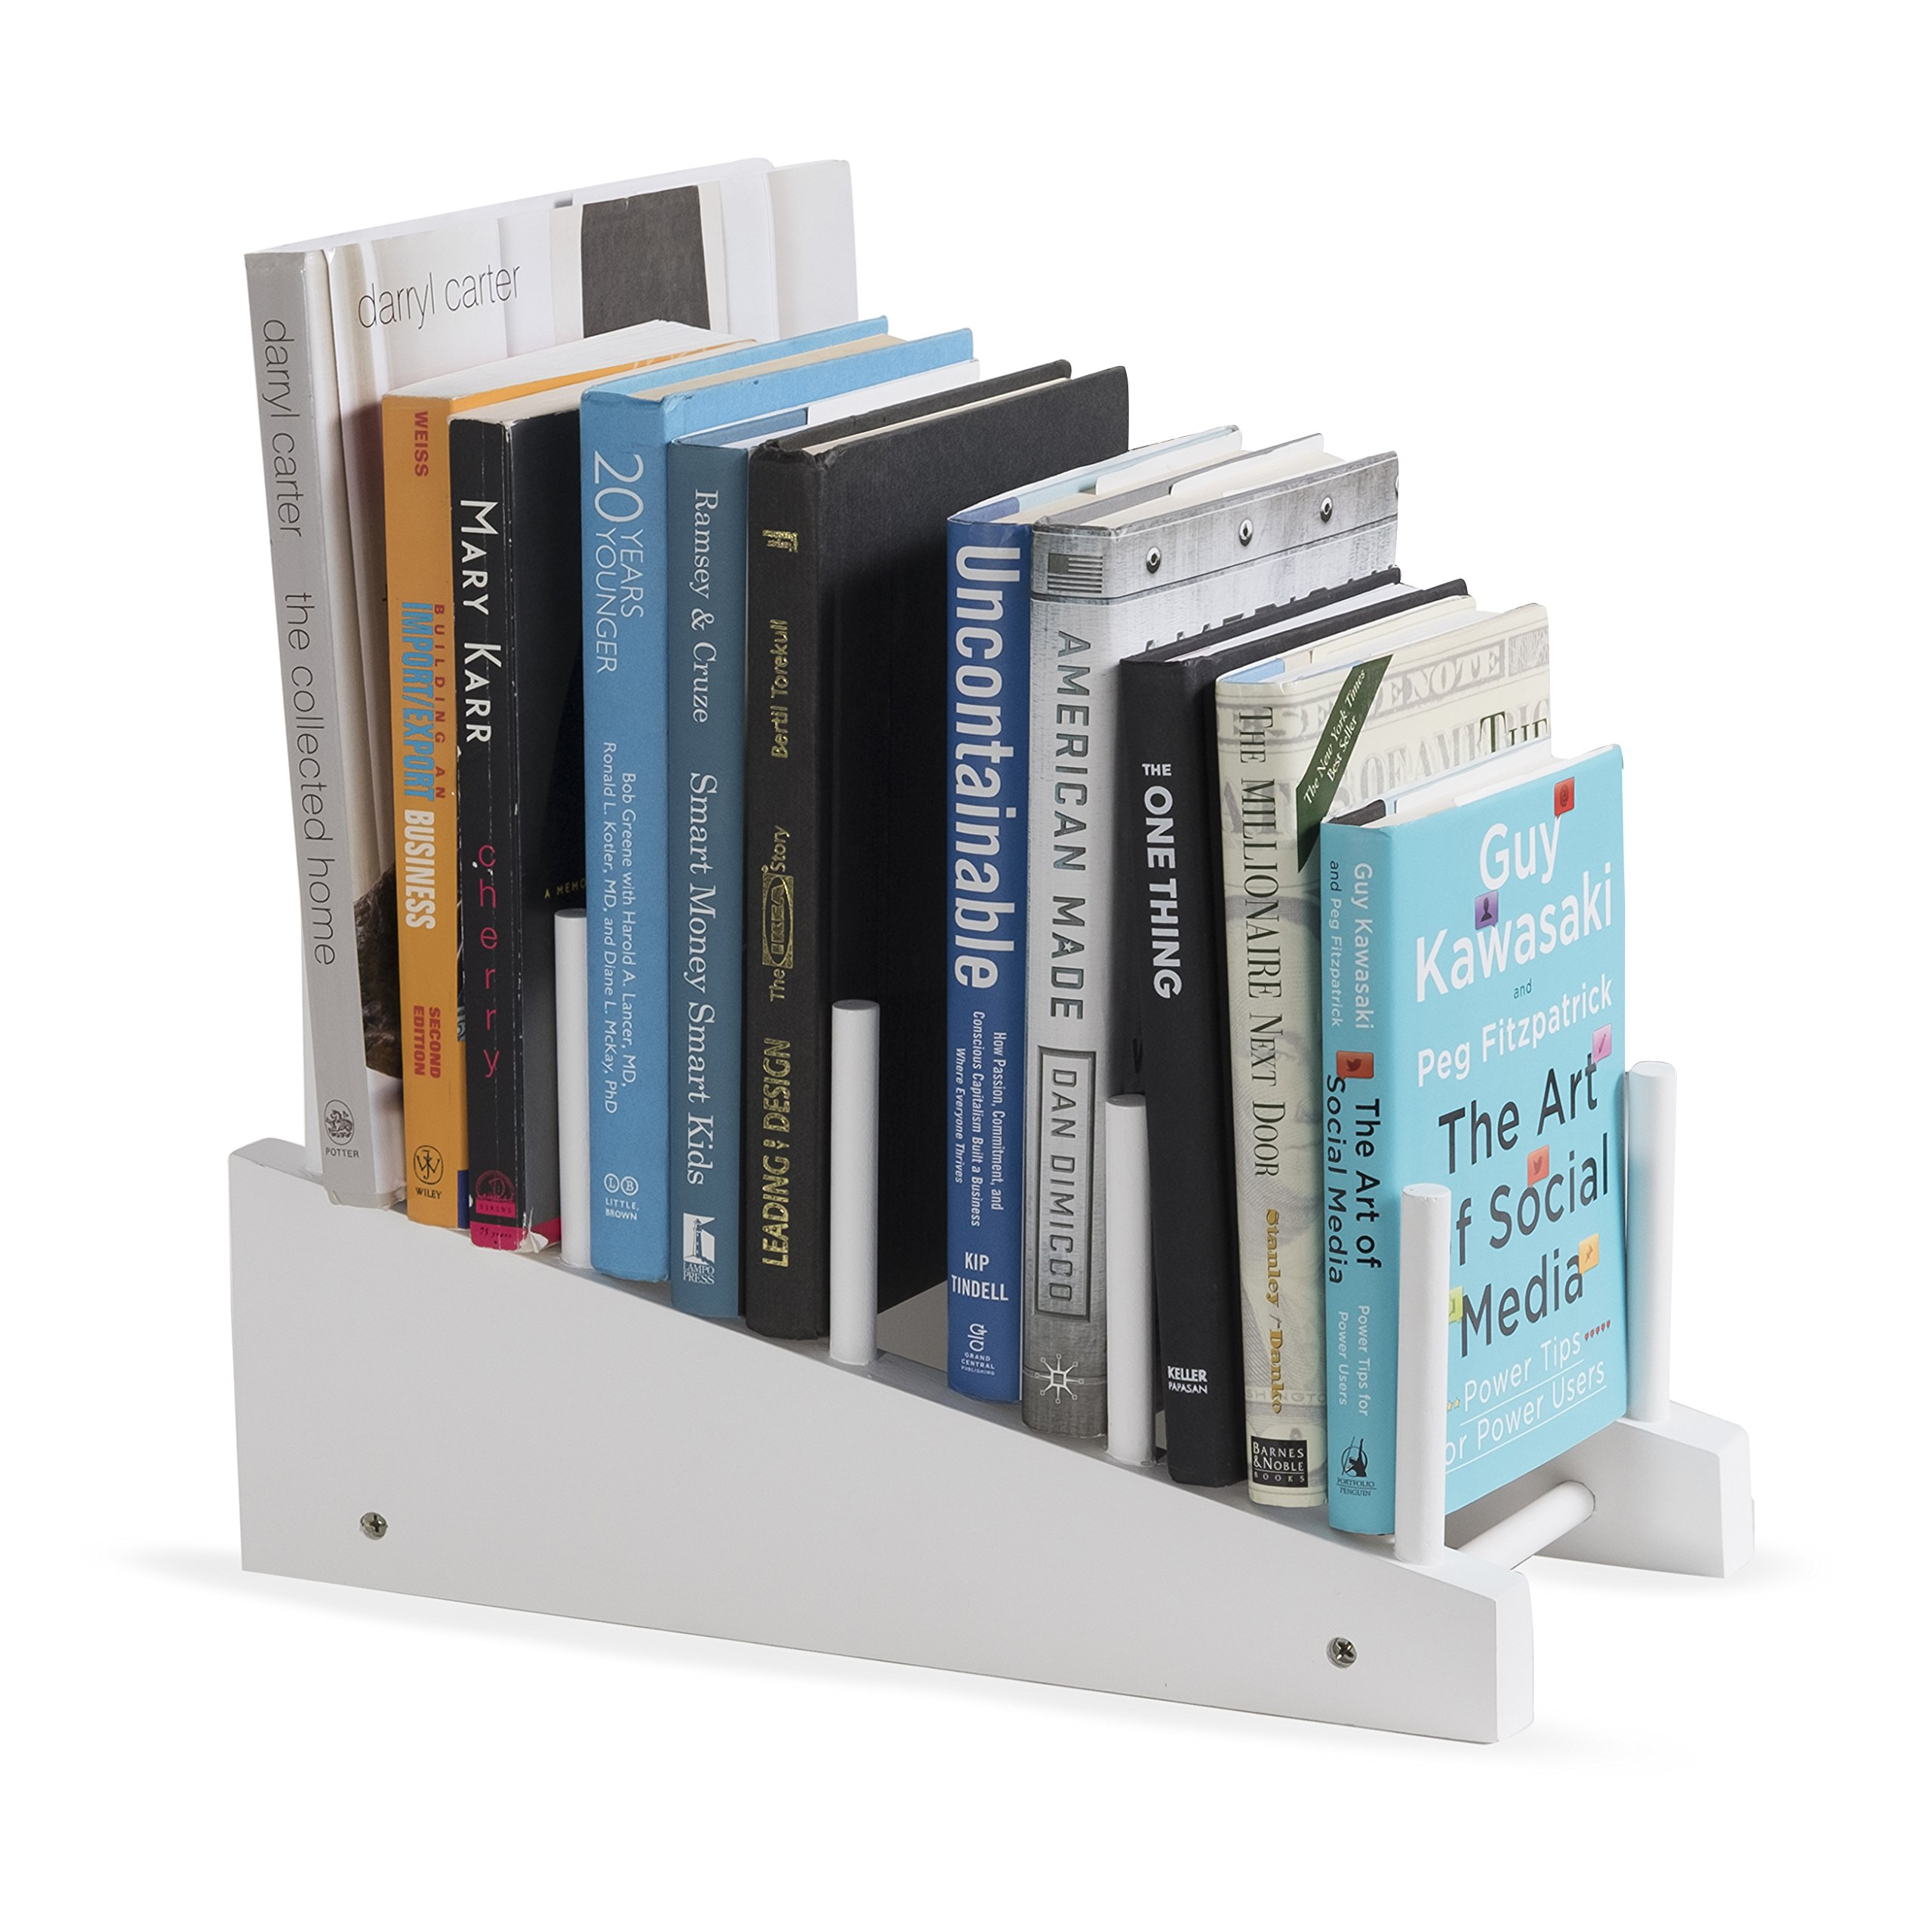 brightmaison Wooden Book Holder Decorative Free-Standing Bookend 4-Slot Magazine Mail File Rack Office Desktop Organizer Décor Display (White) by brightmaison